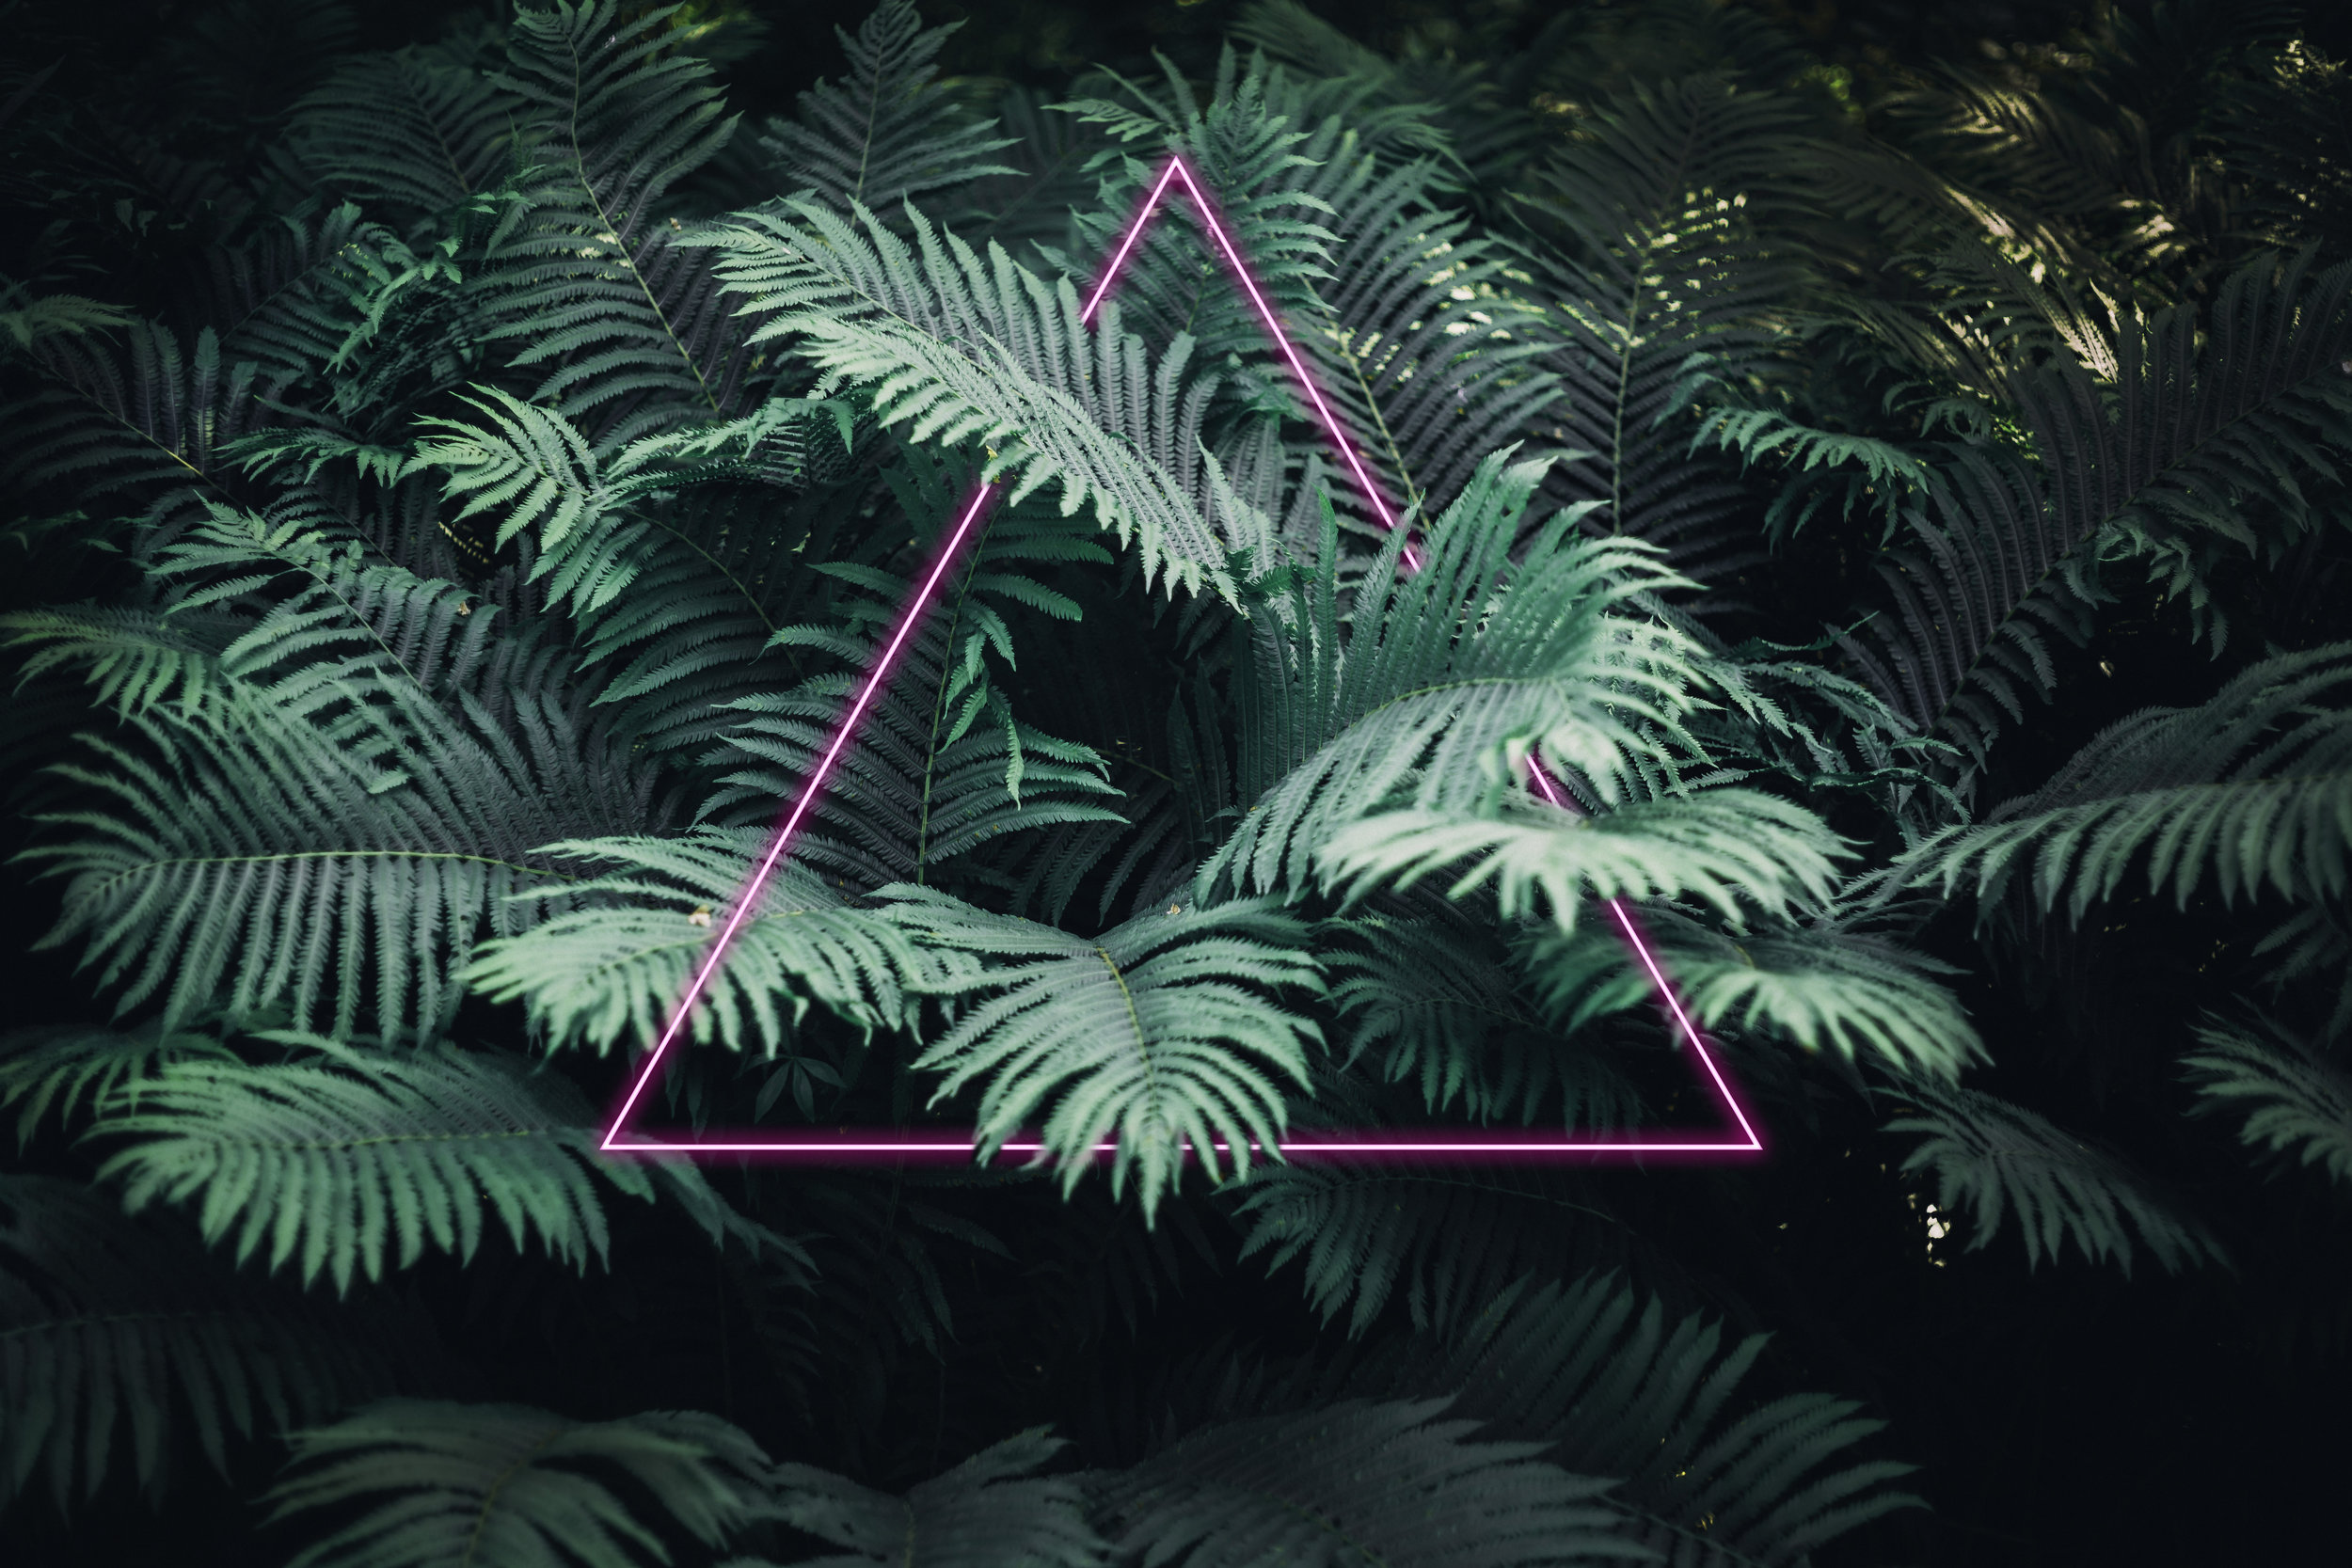 ferns with neon triangle 16 bit.jpg